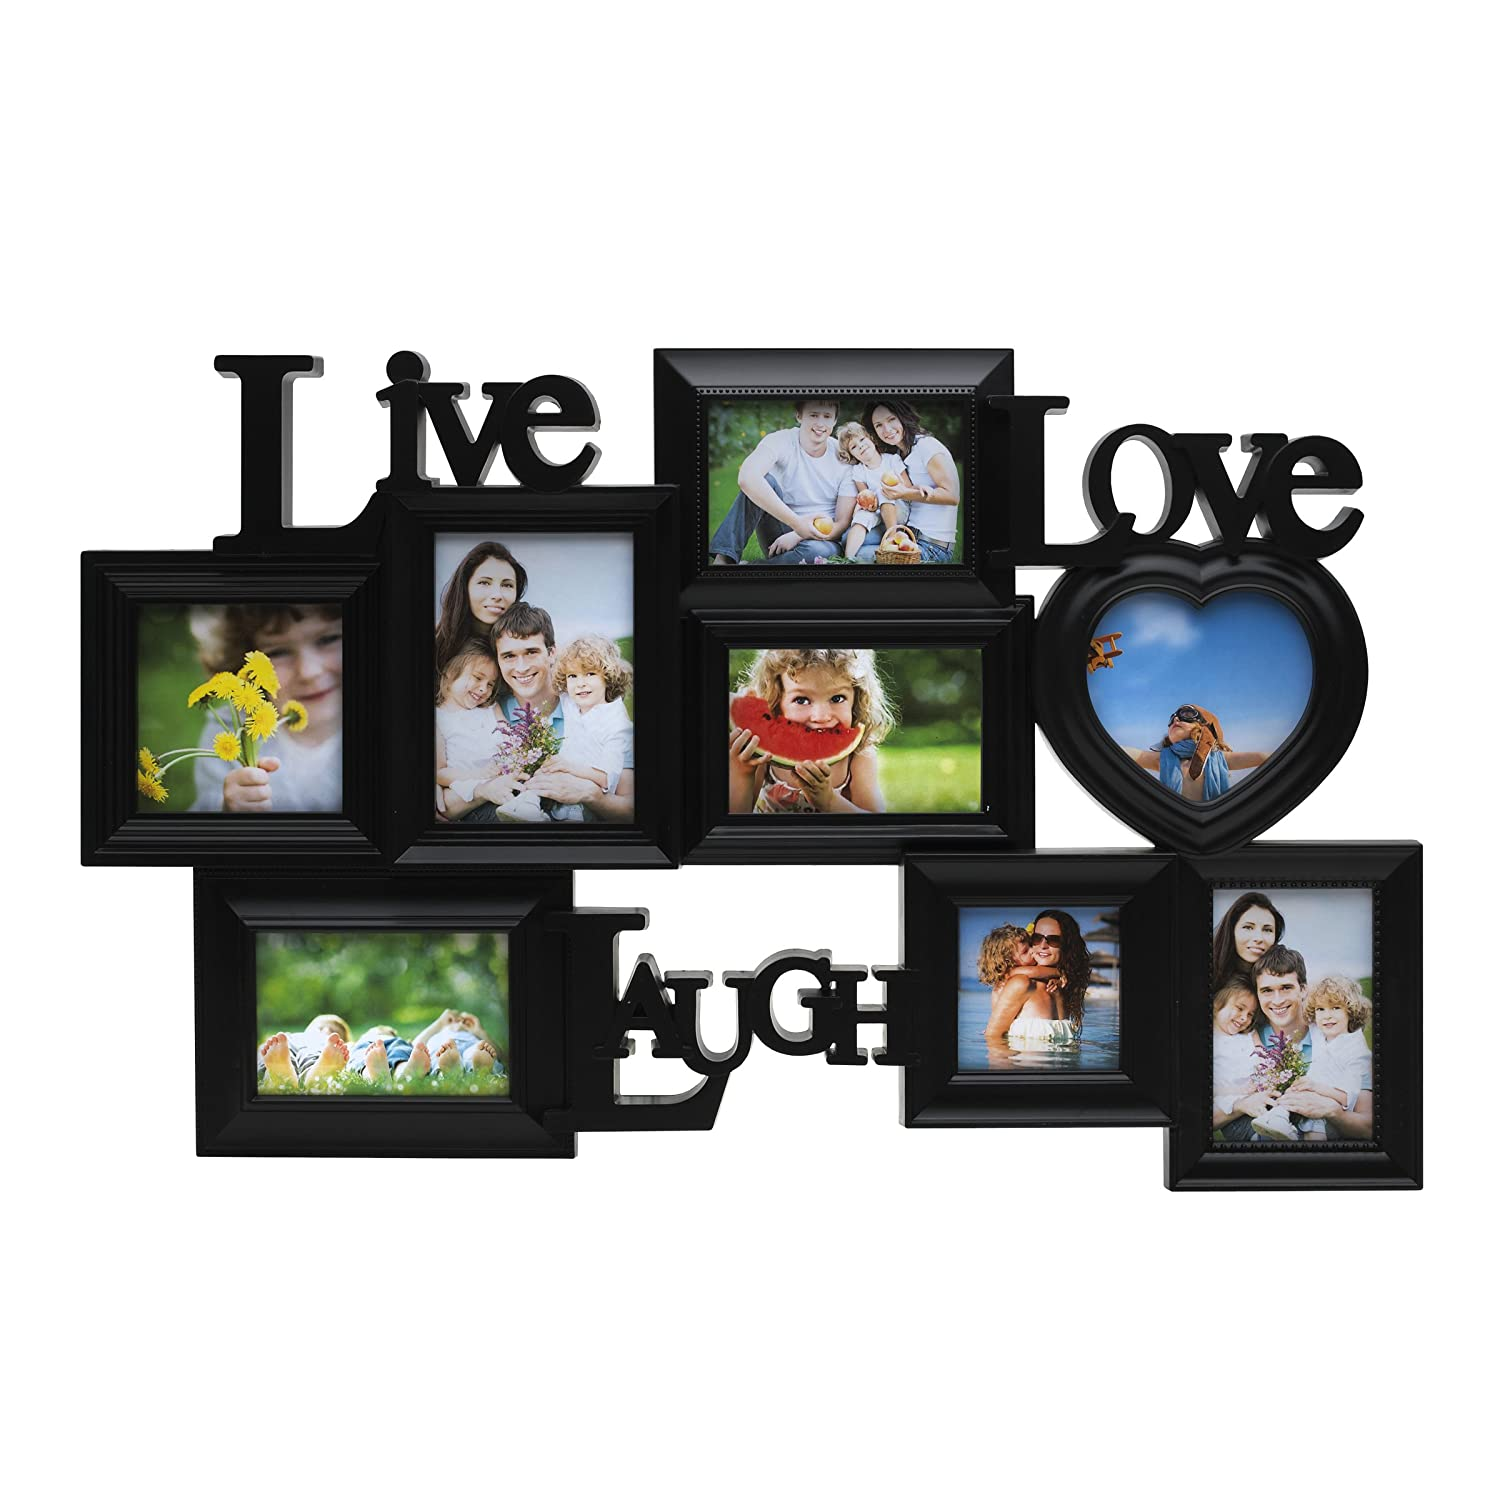 Melannco 8-Opening Live Laugh Love Collage (Black)